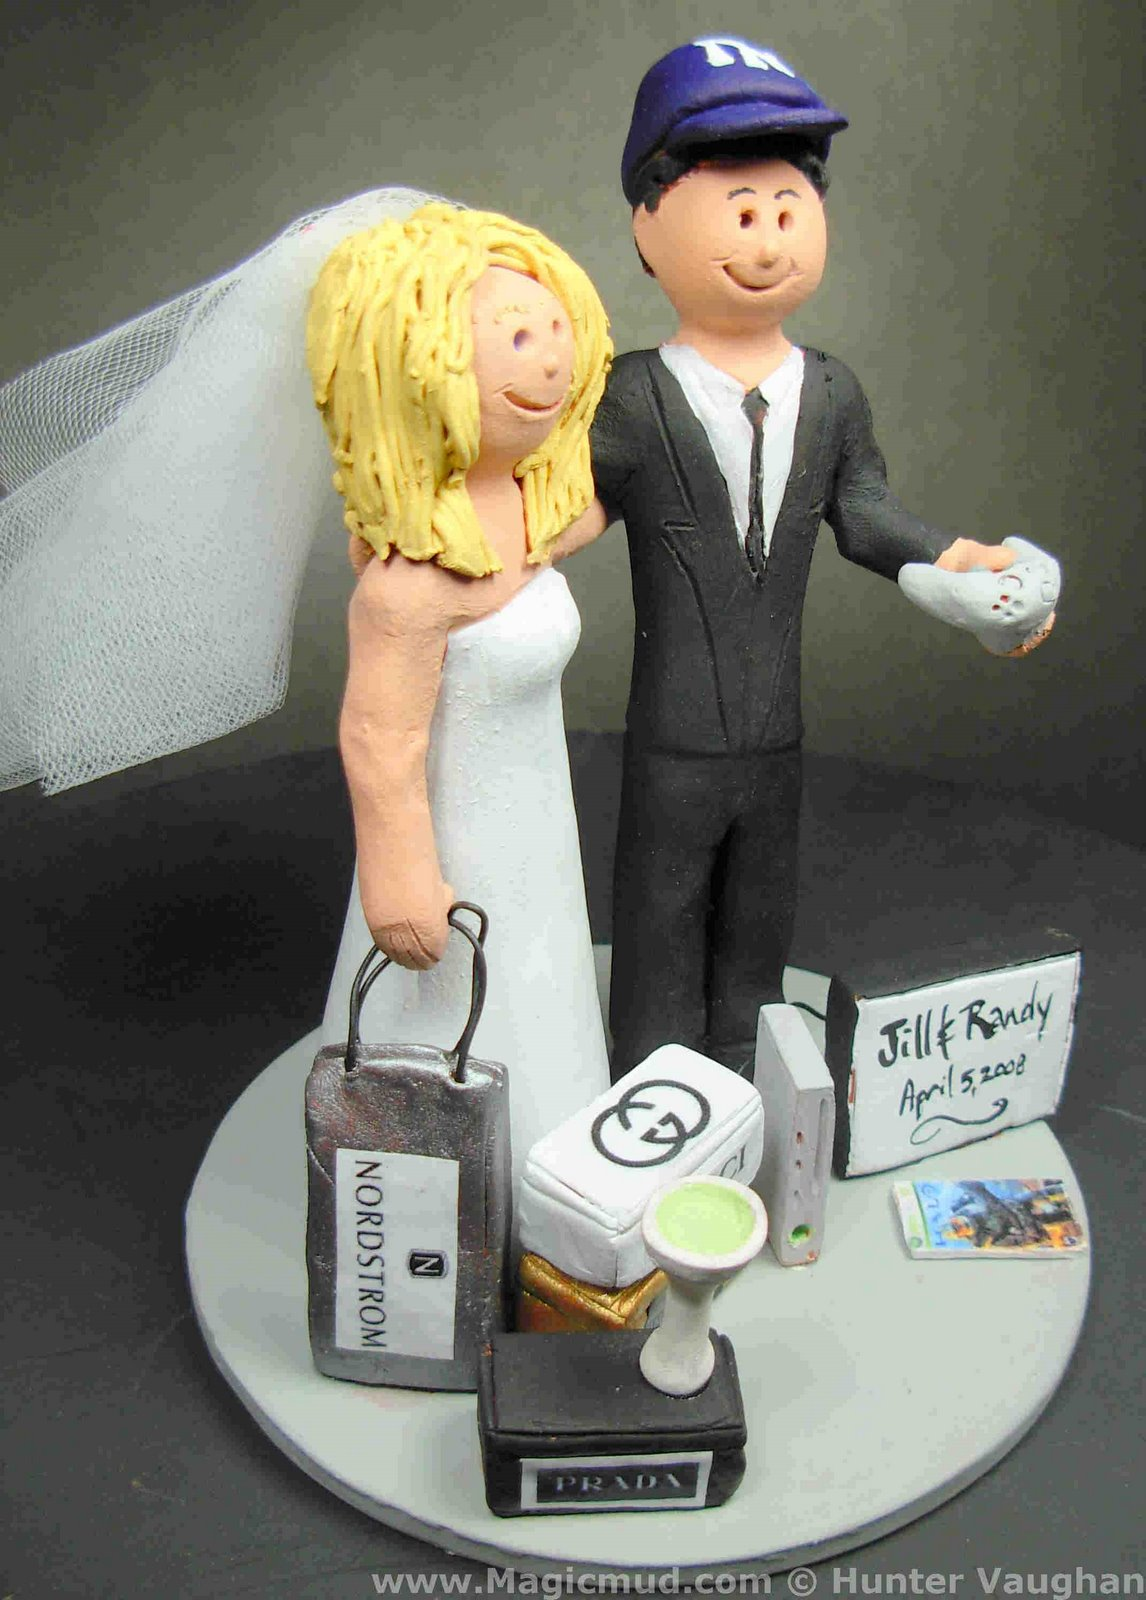 Wedding Cake Topper Of The Day Video R Weds A Ping Bride